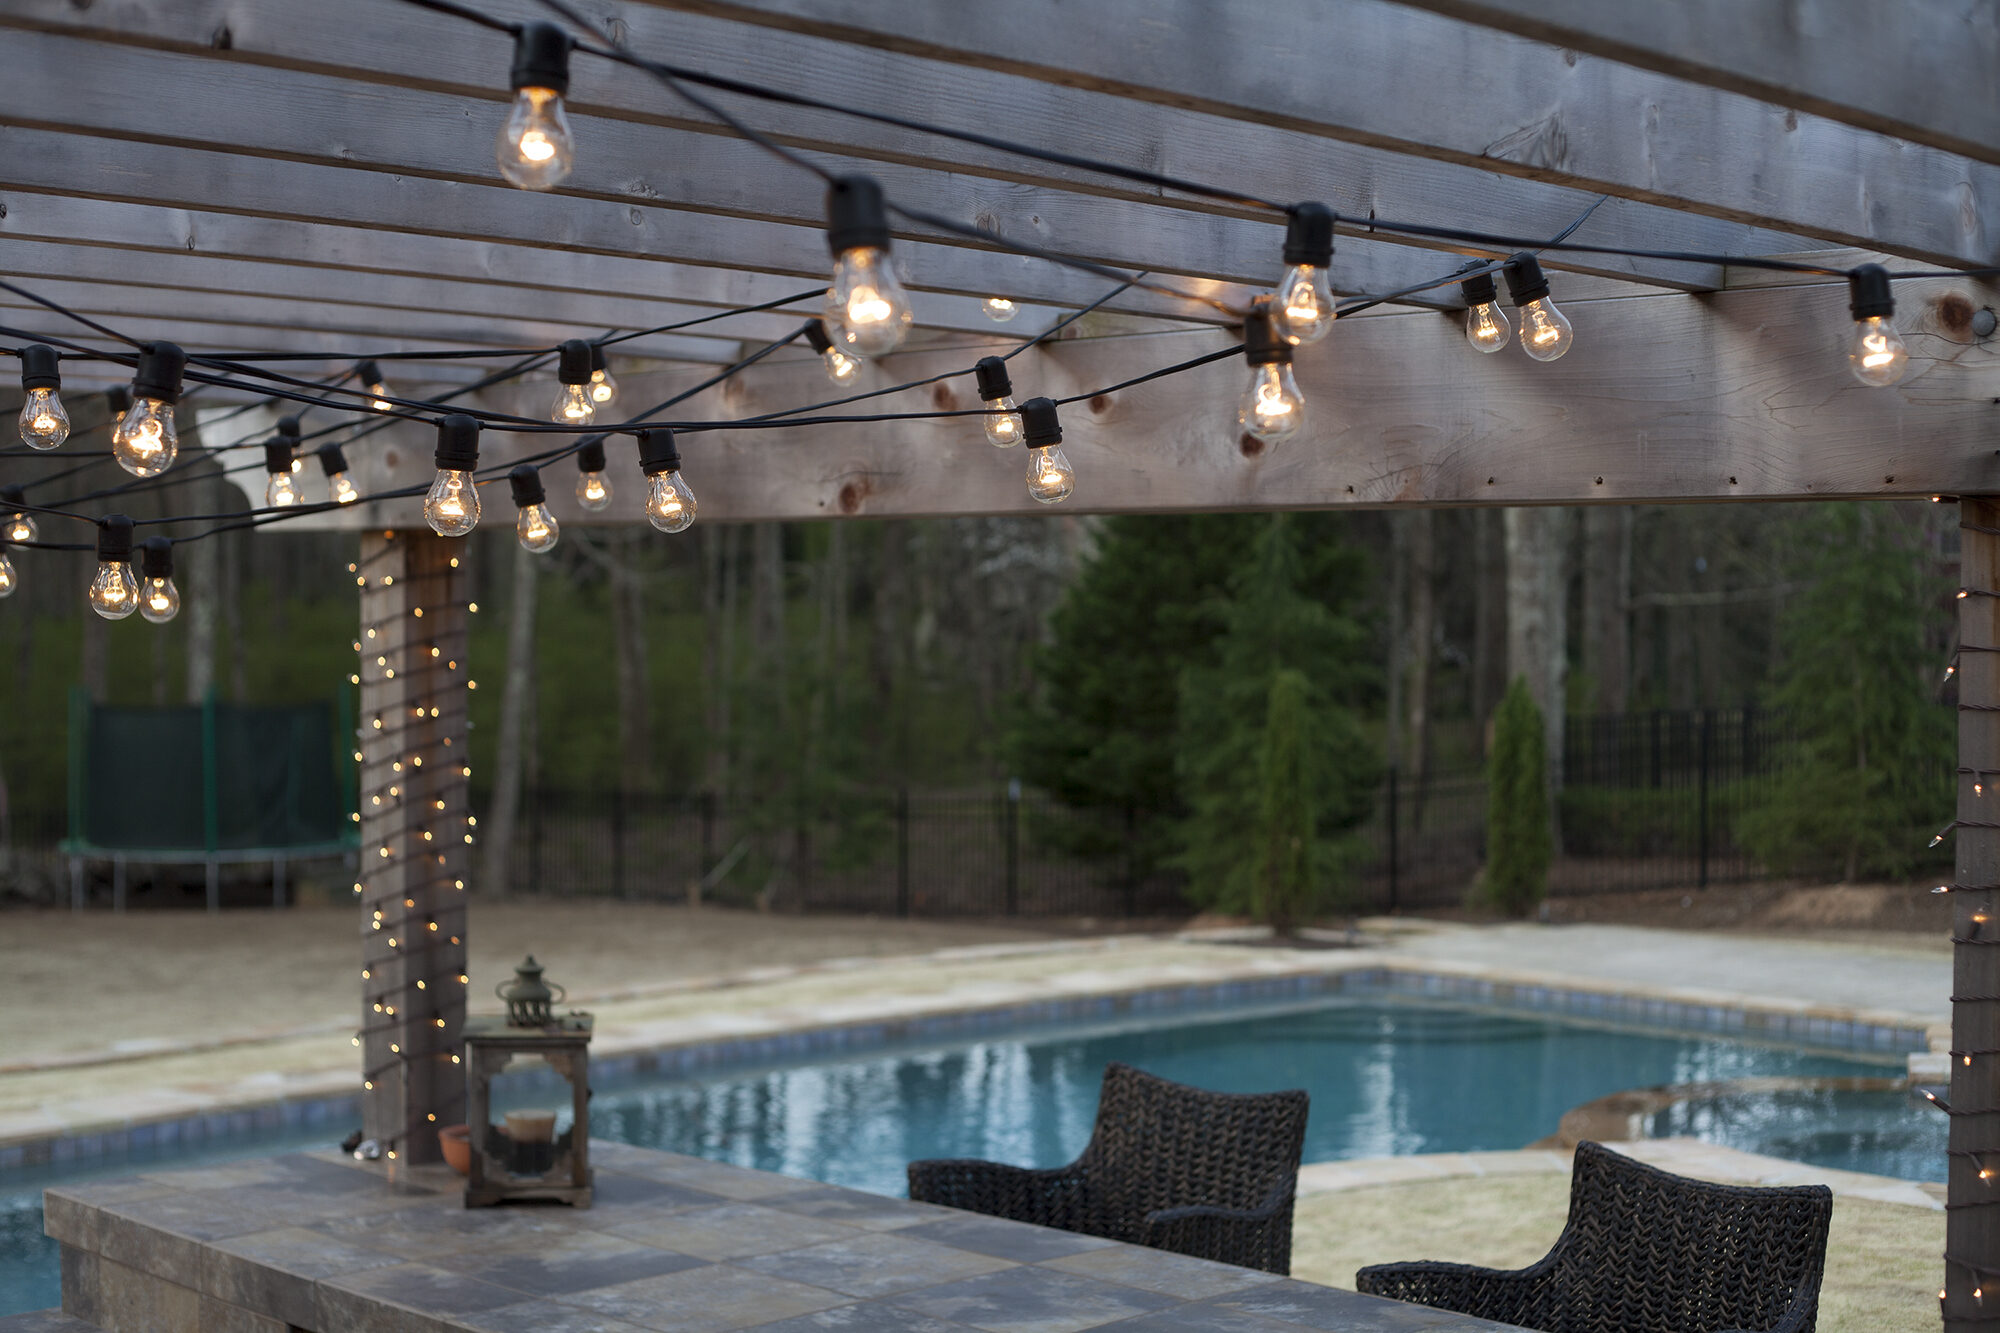 String Lights Patio Cover : Hanging Patio String Lights: A Pattern of Perfection - Yard Envy